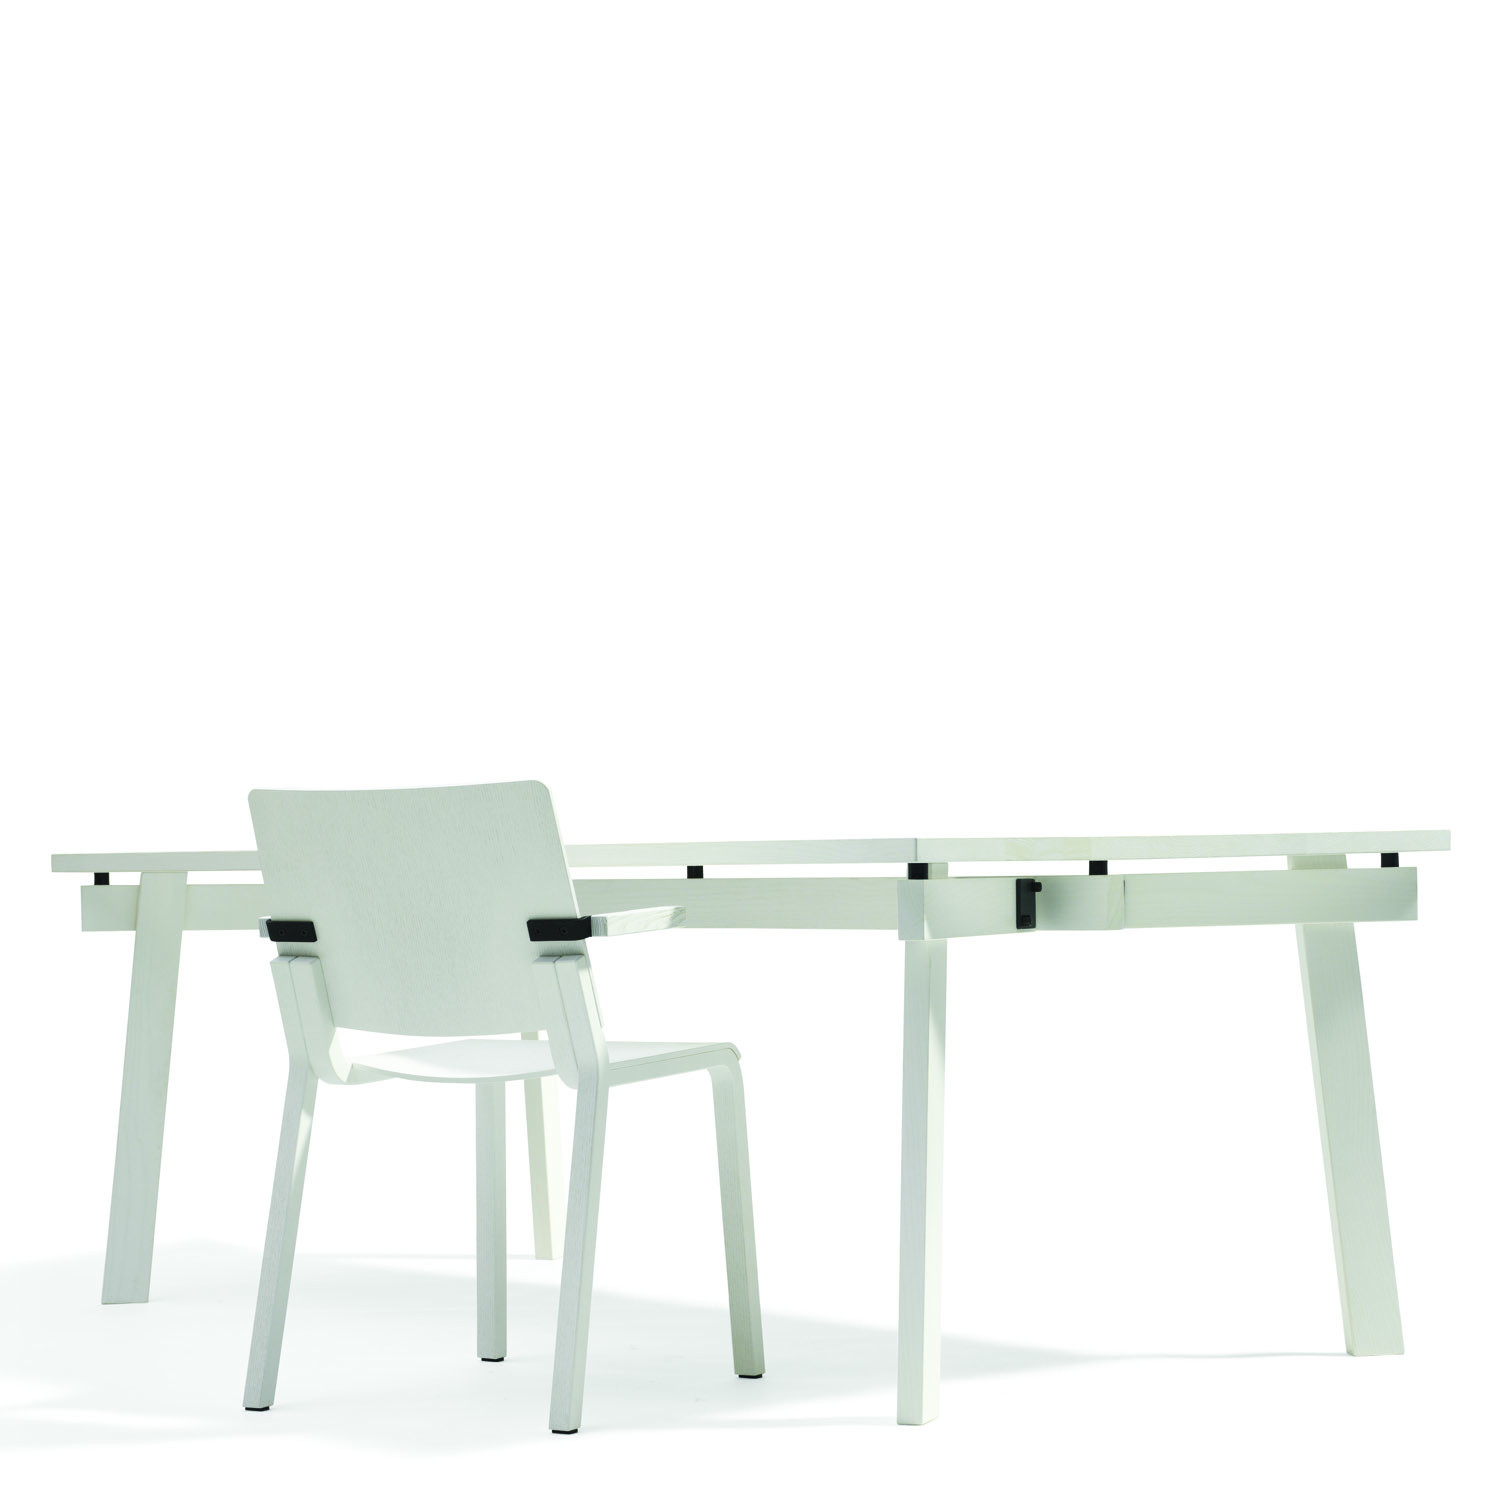 Size Table L905 by Bla Station